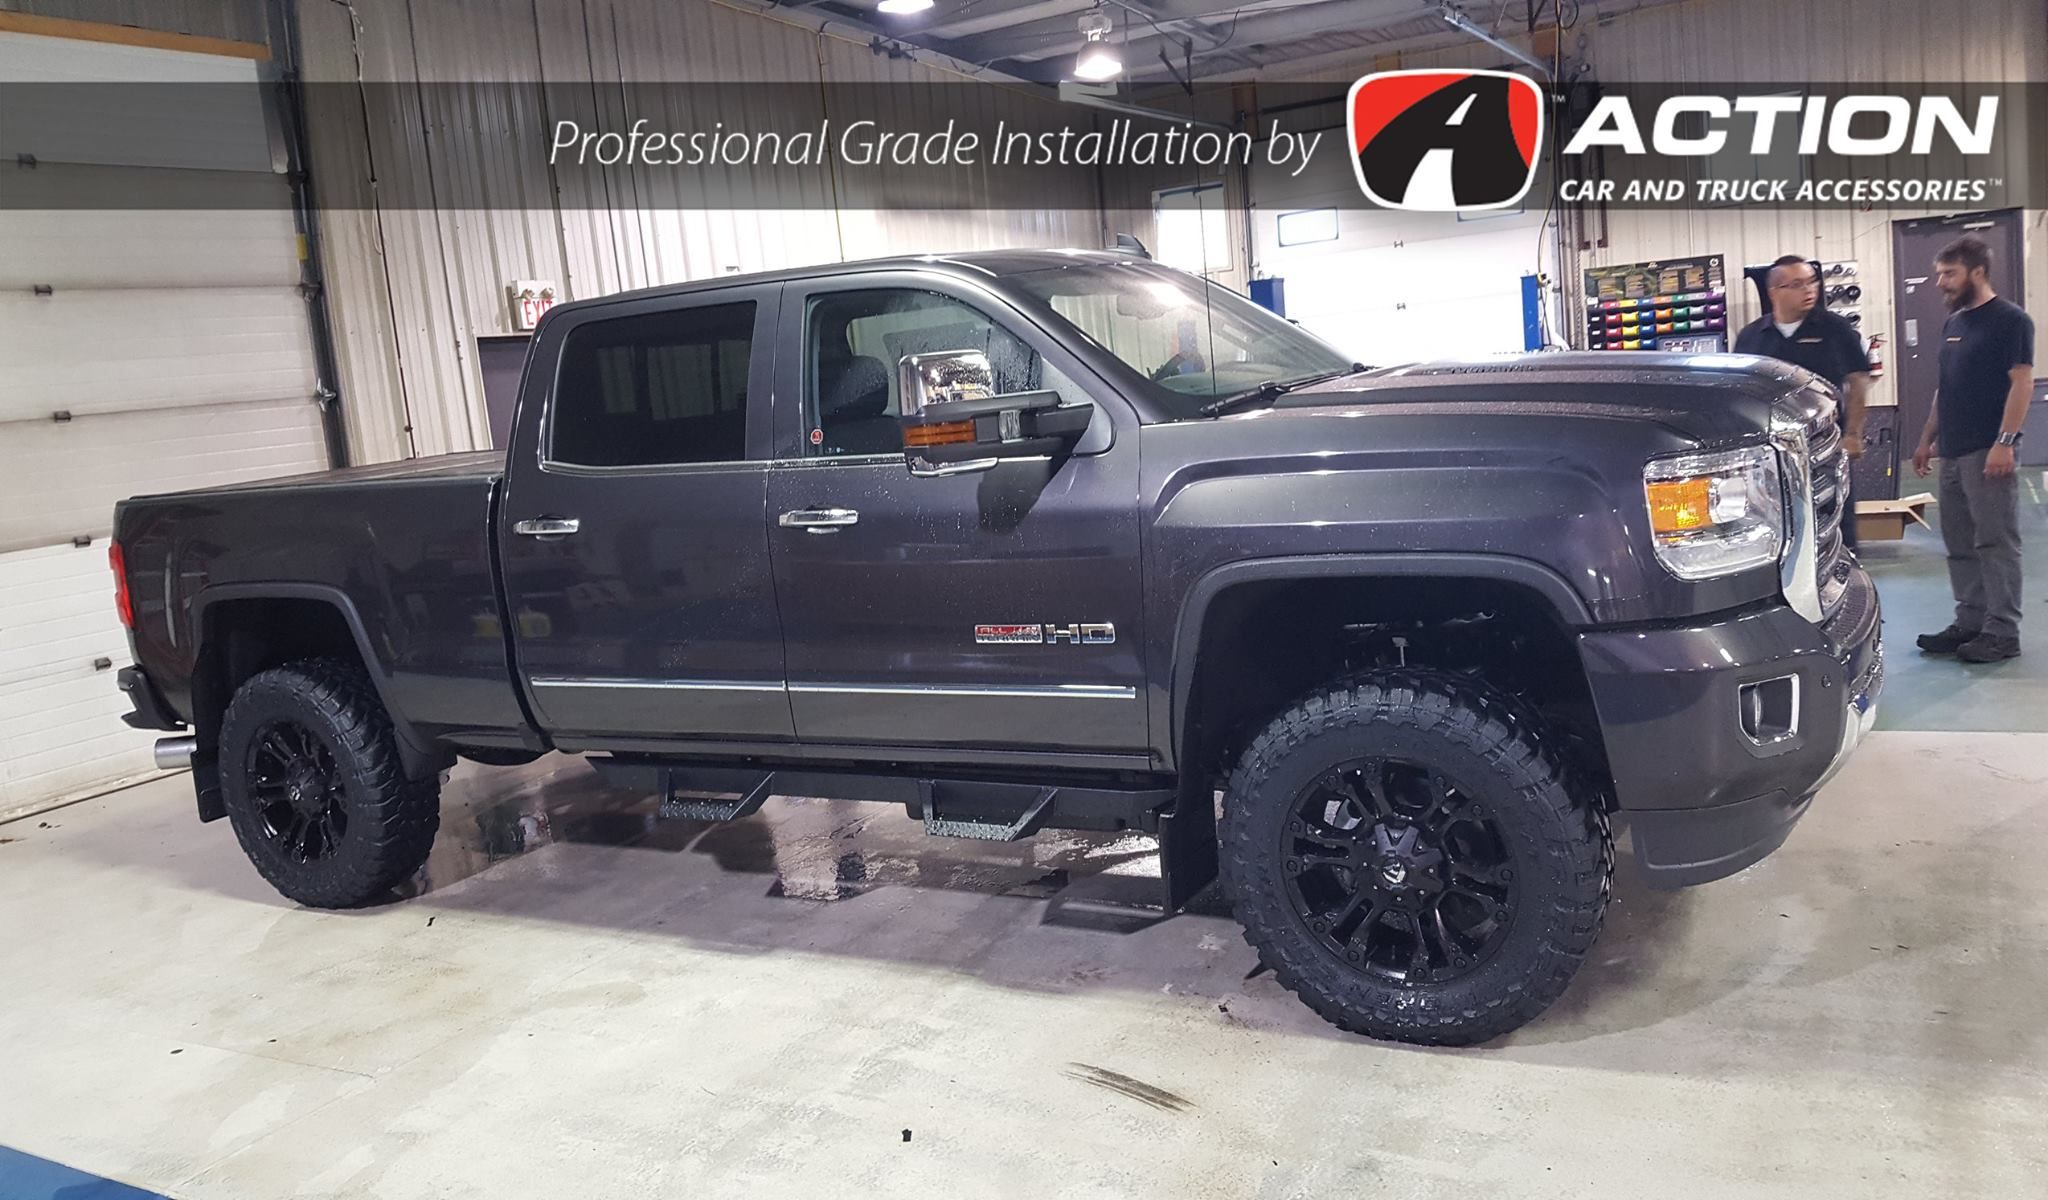 This Gmc From Our Edmonton Ab Location Is Complete With 4 Lift